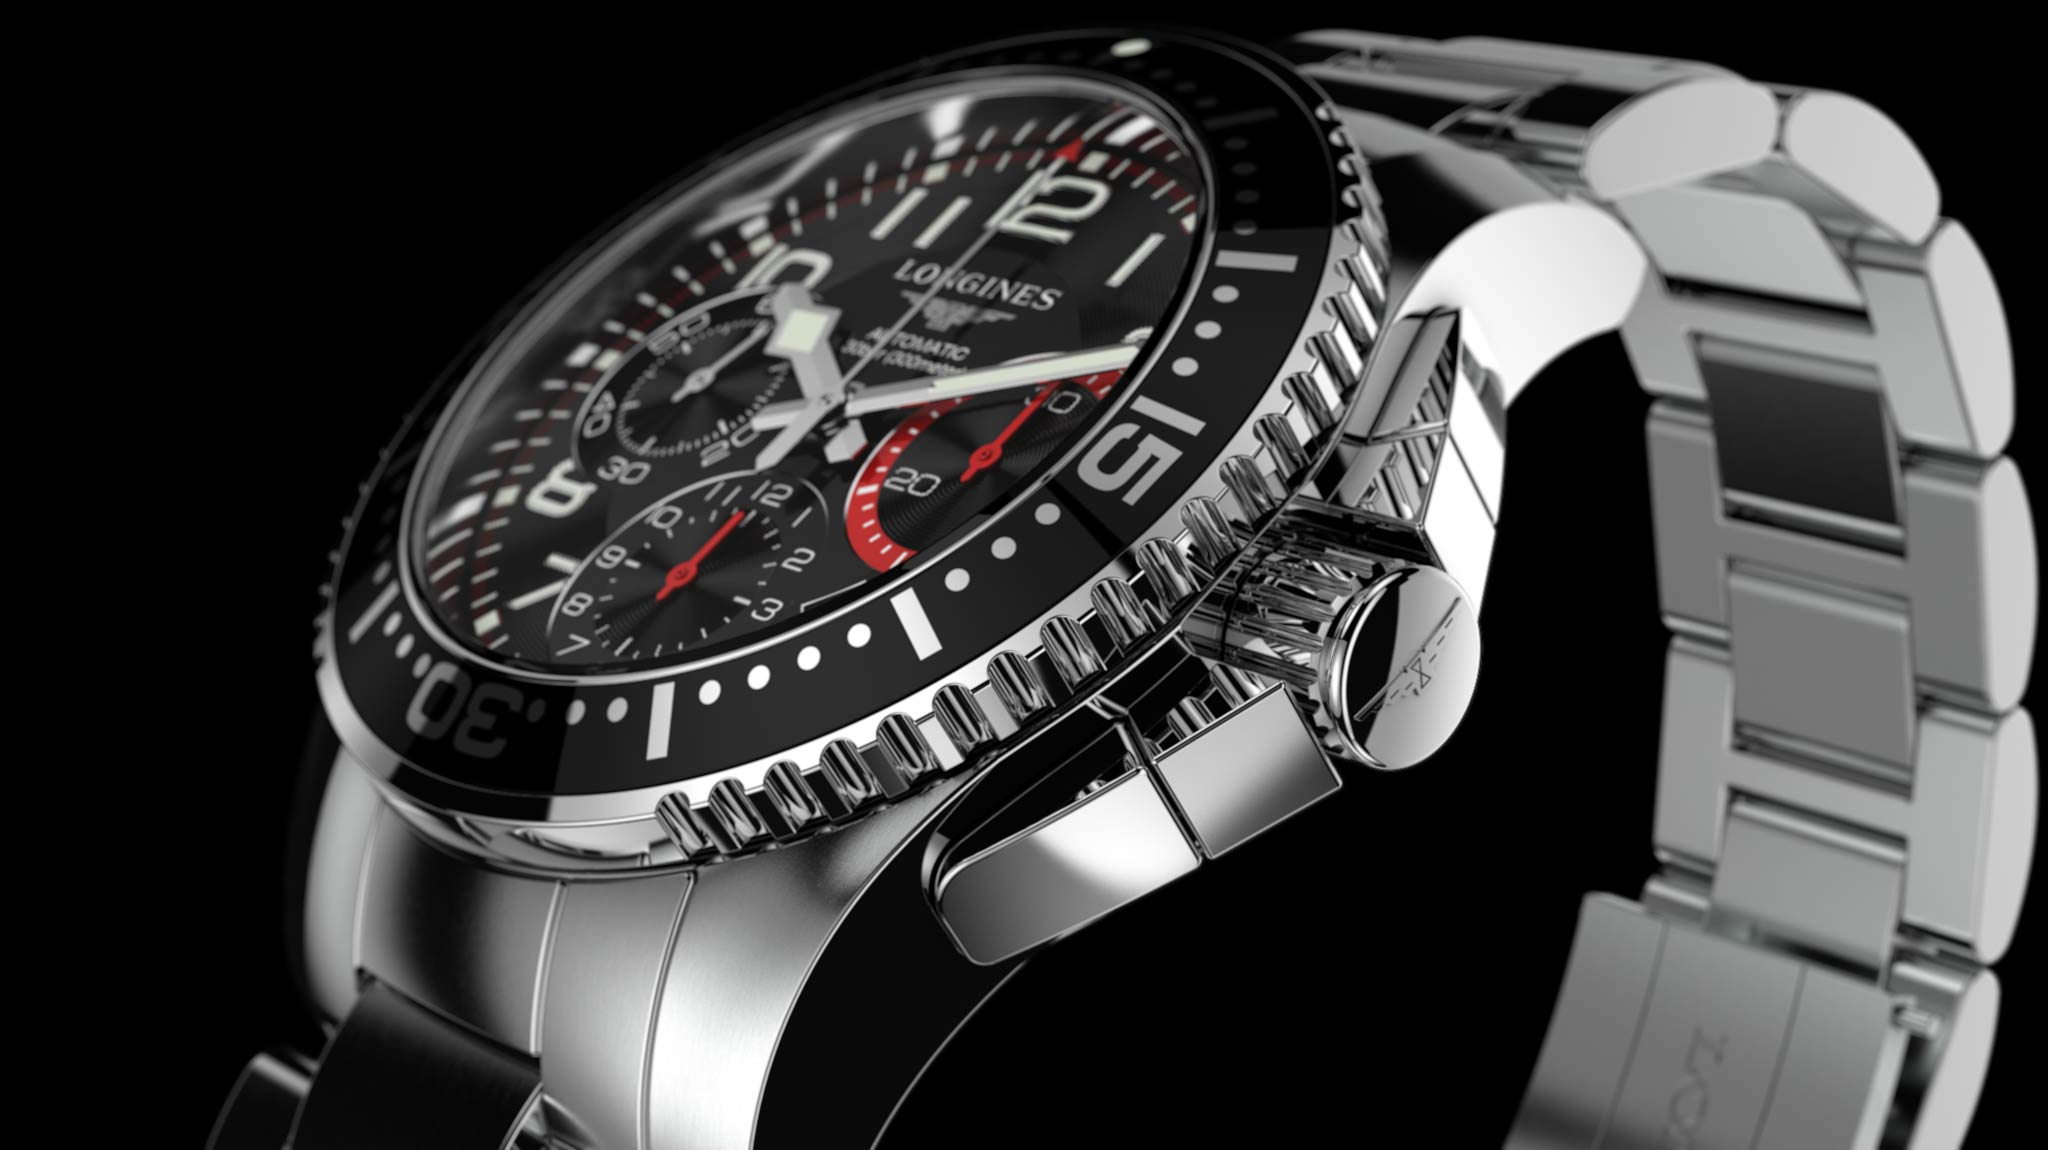 3DVISION NYVALIS 2014 LONGINES HydroConquest 02